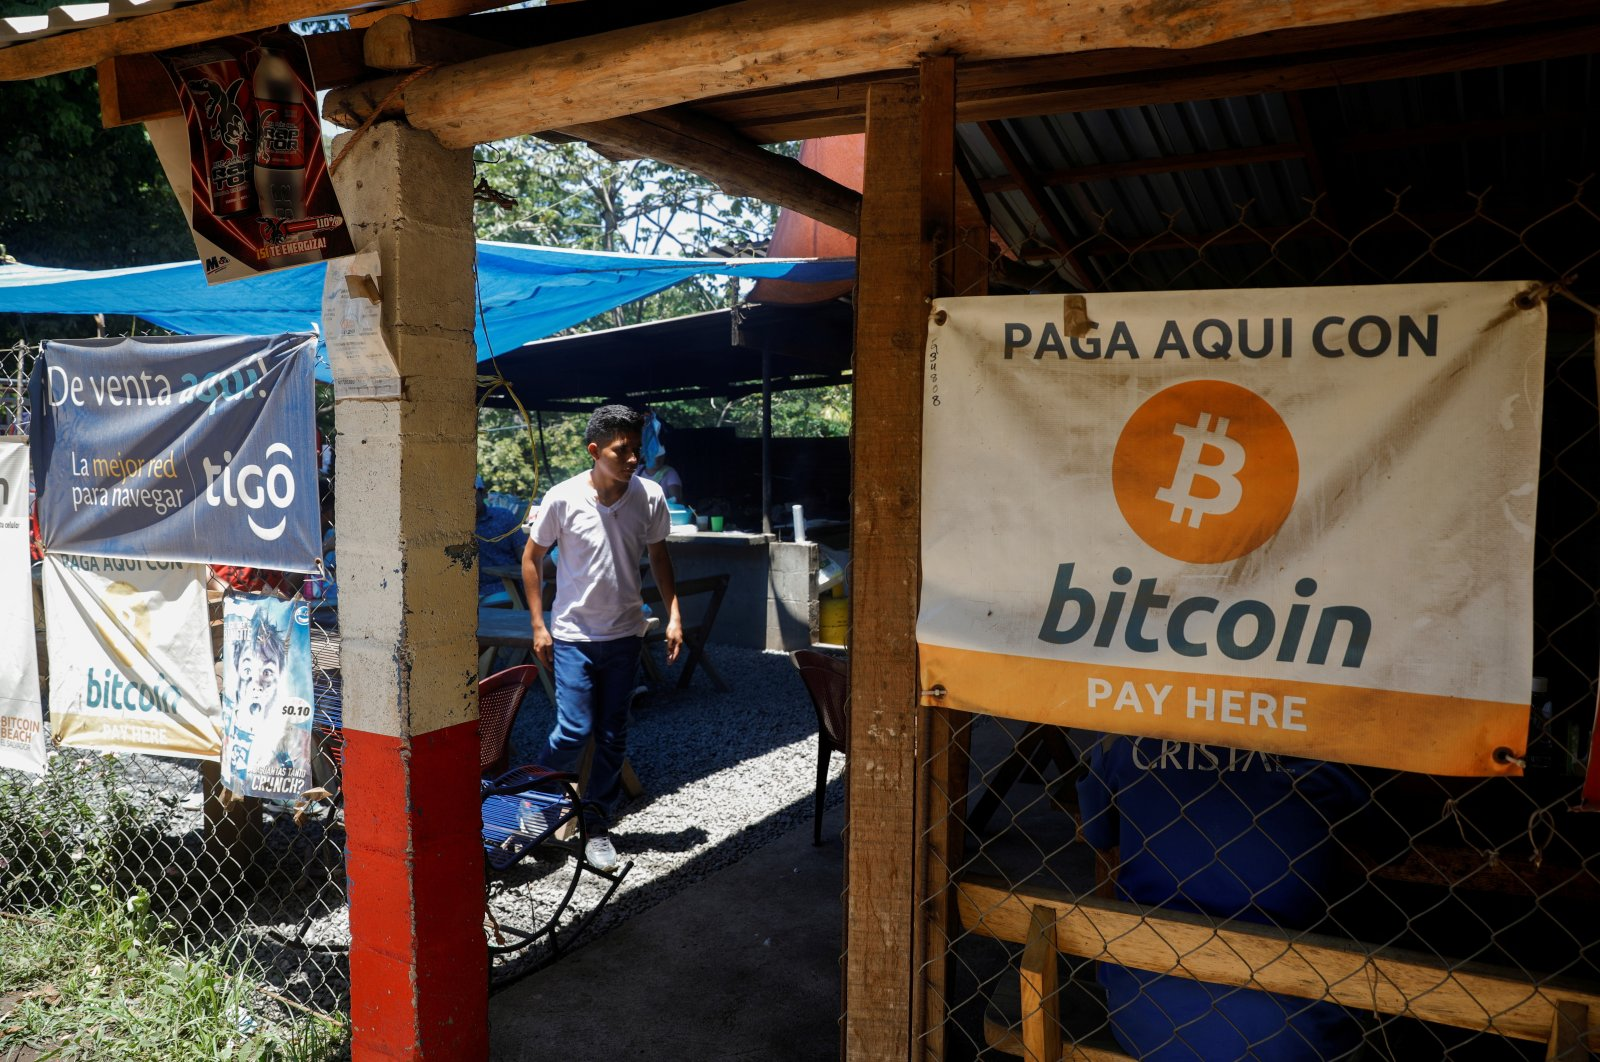 Bitcoin banners are seen outside a small restaurant at El Zonte Beach in Chiltiupan, El Salvador, June 8, 2021. (Reuters Photo)